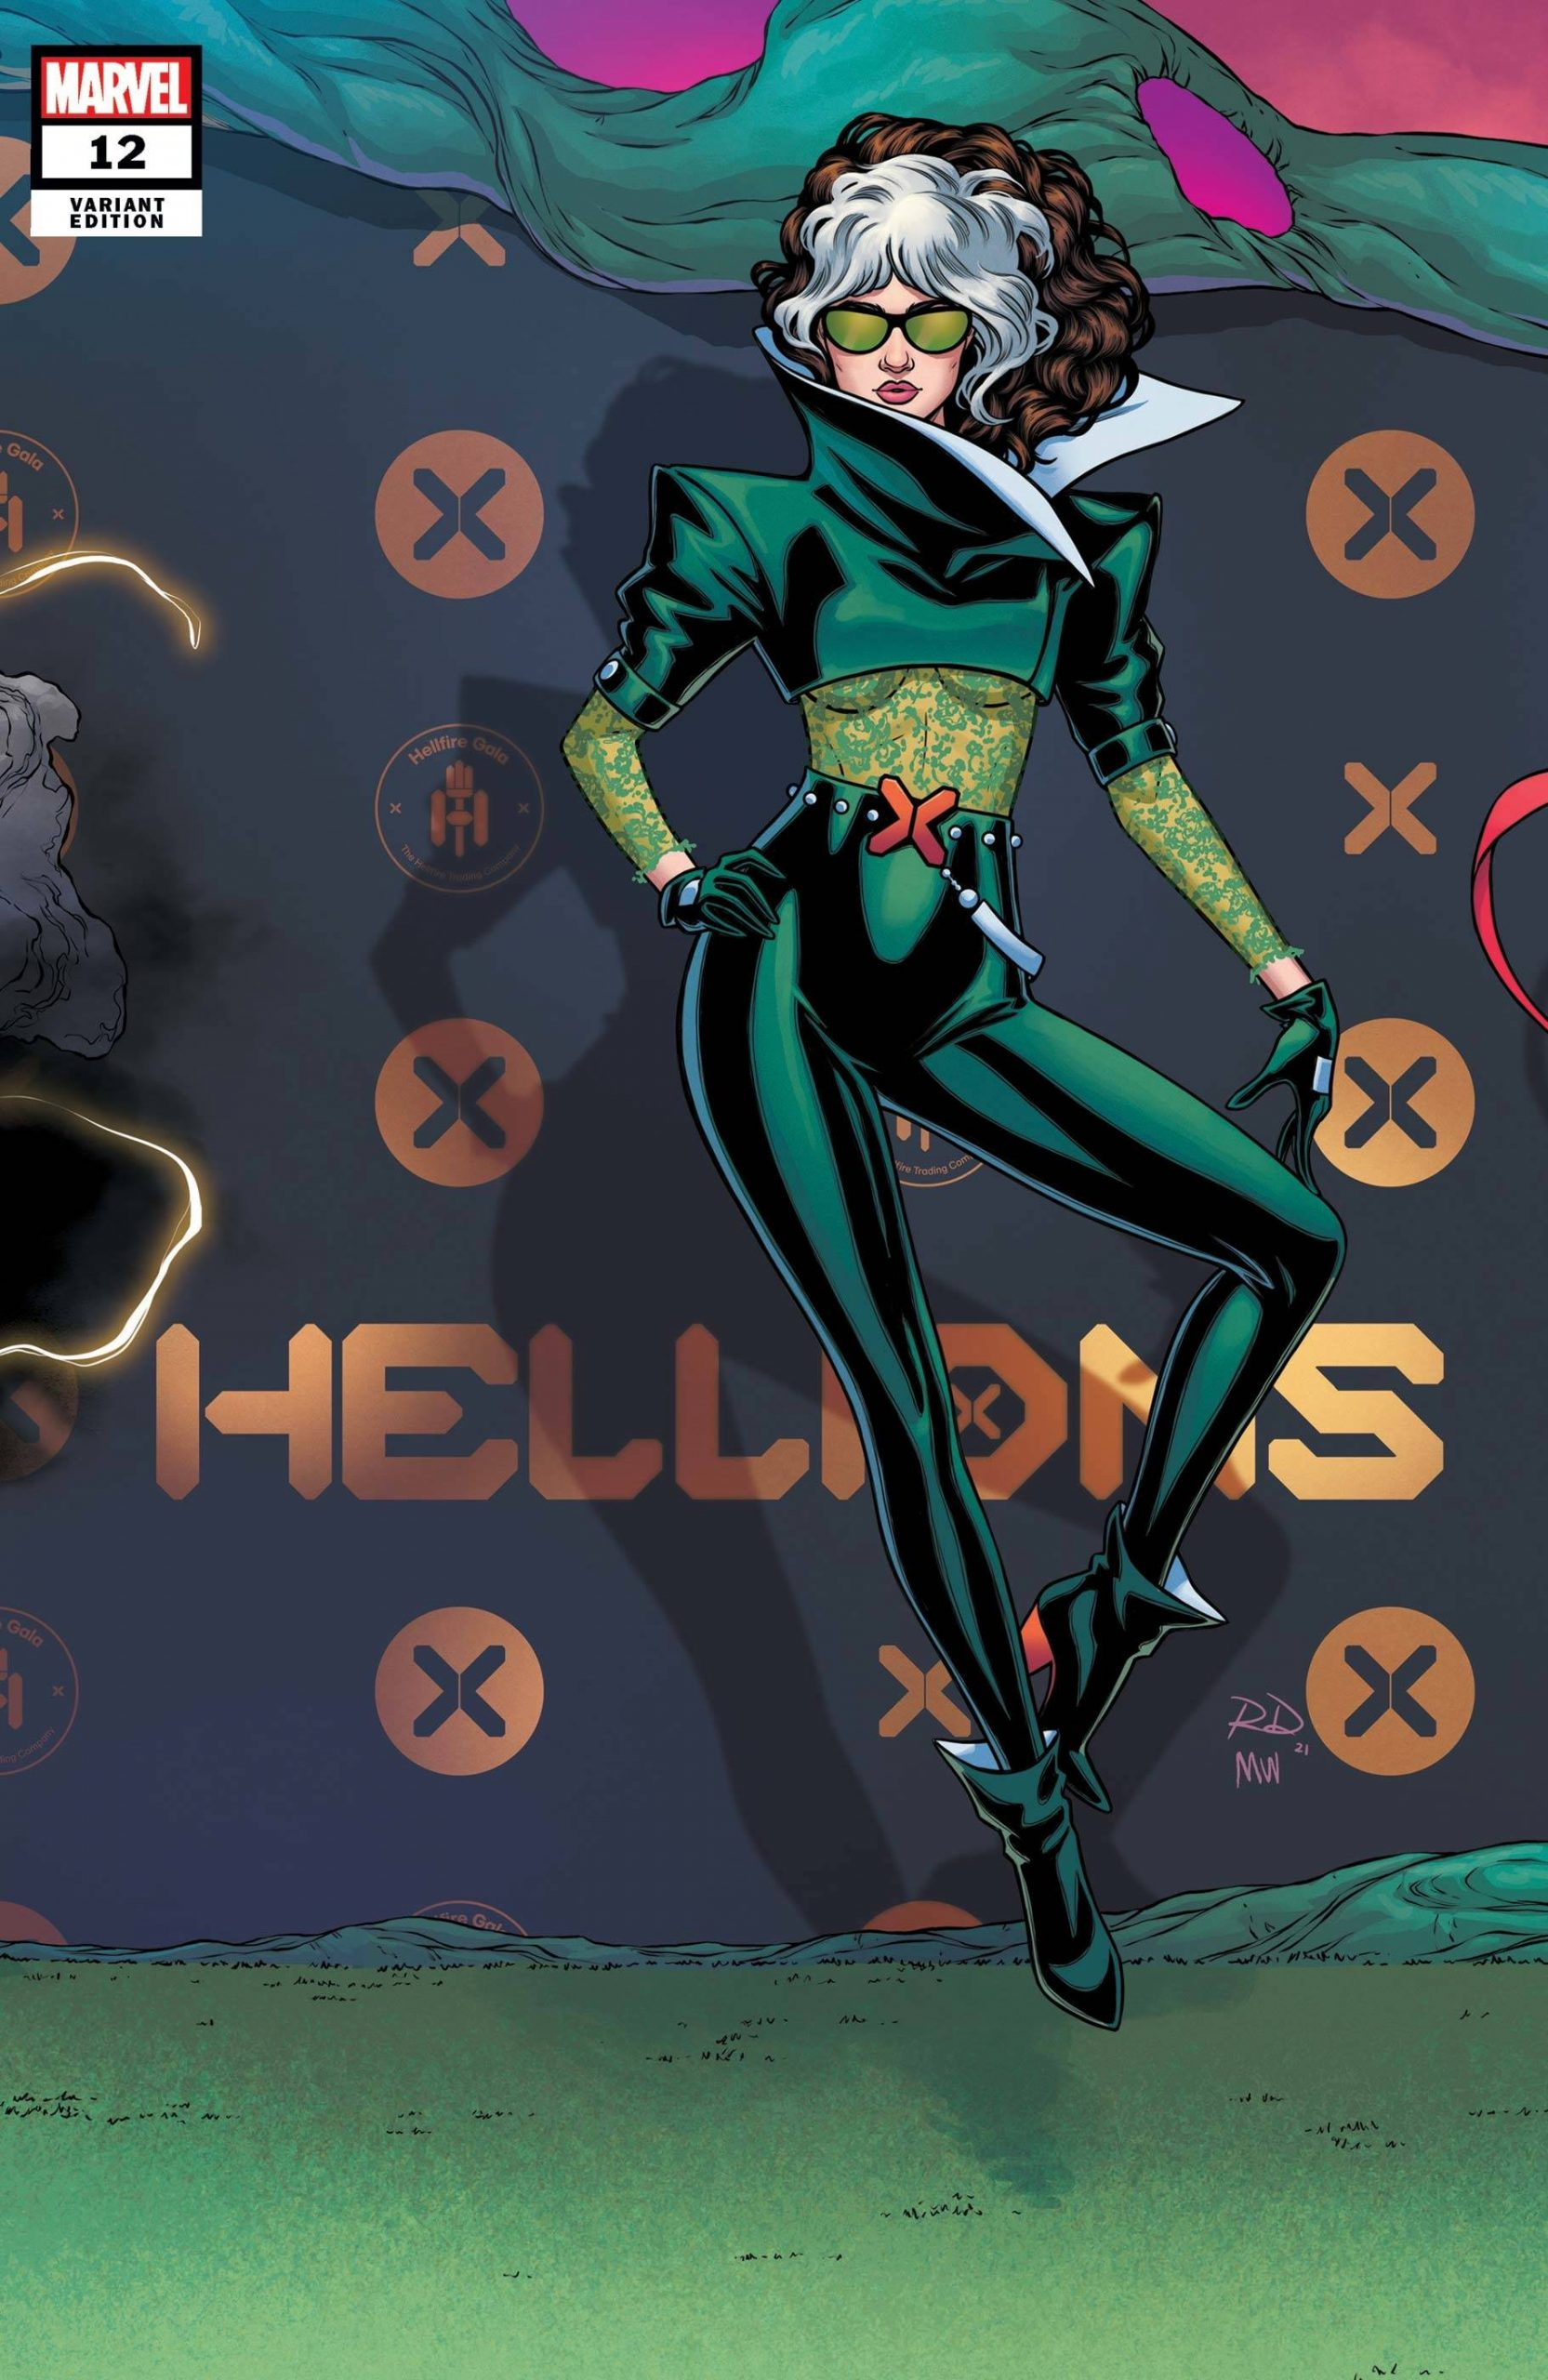 Hellions-12-spoilers-0-1-scaled-1 Hellions-12-spoilers-0-1-scaled-1